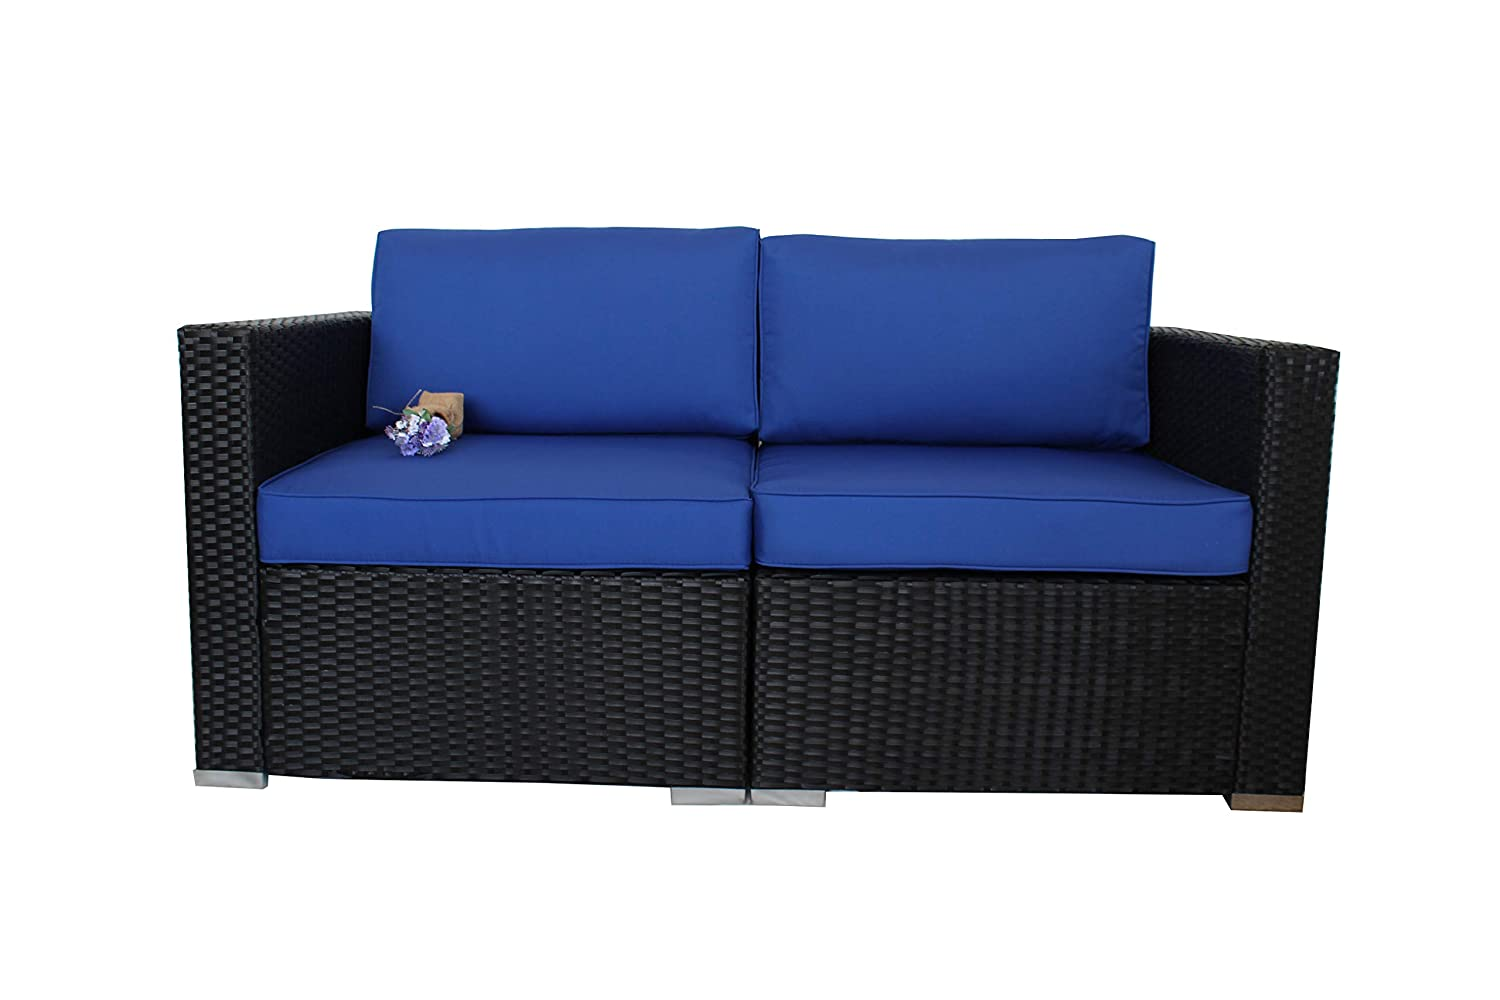 Outdoor Black Rattan Wicker Sofa Set Garden Patio Furniture Cushioned Sectional Loveseat Royal Blue Cushions,2 Piece